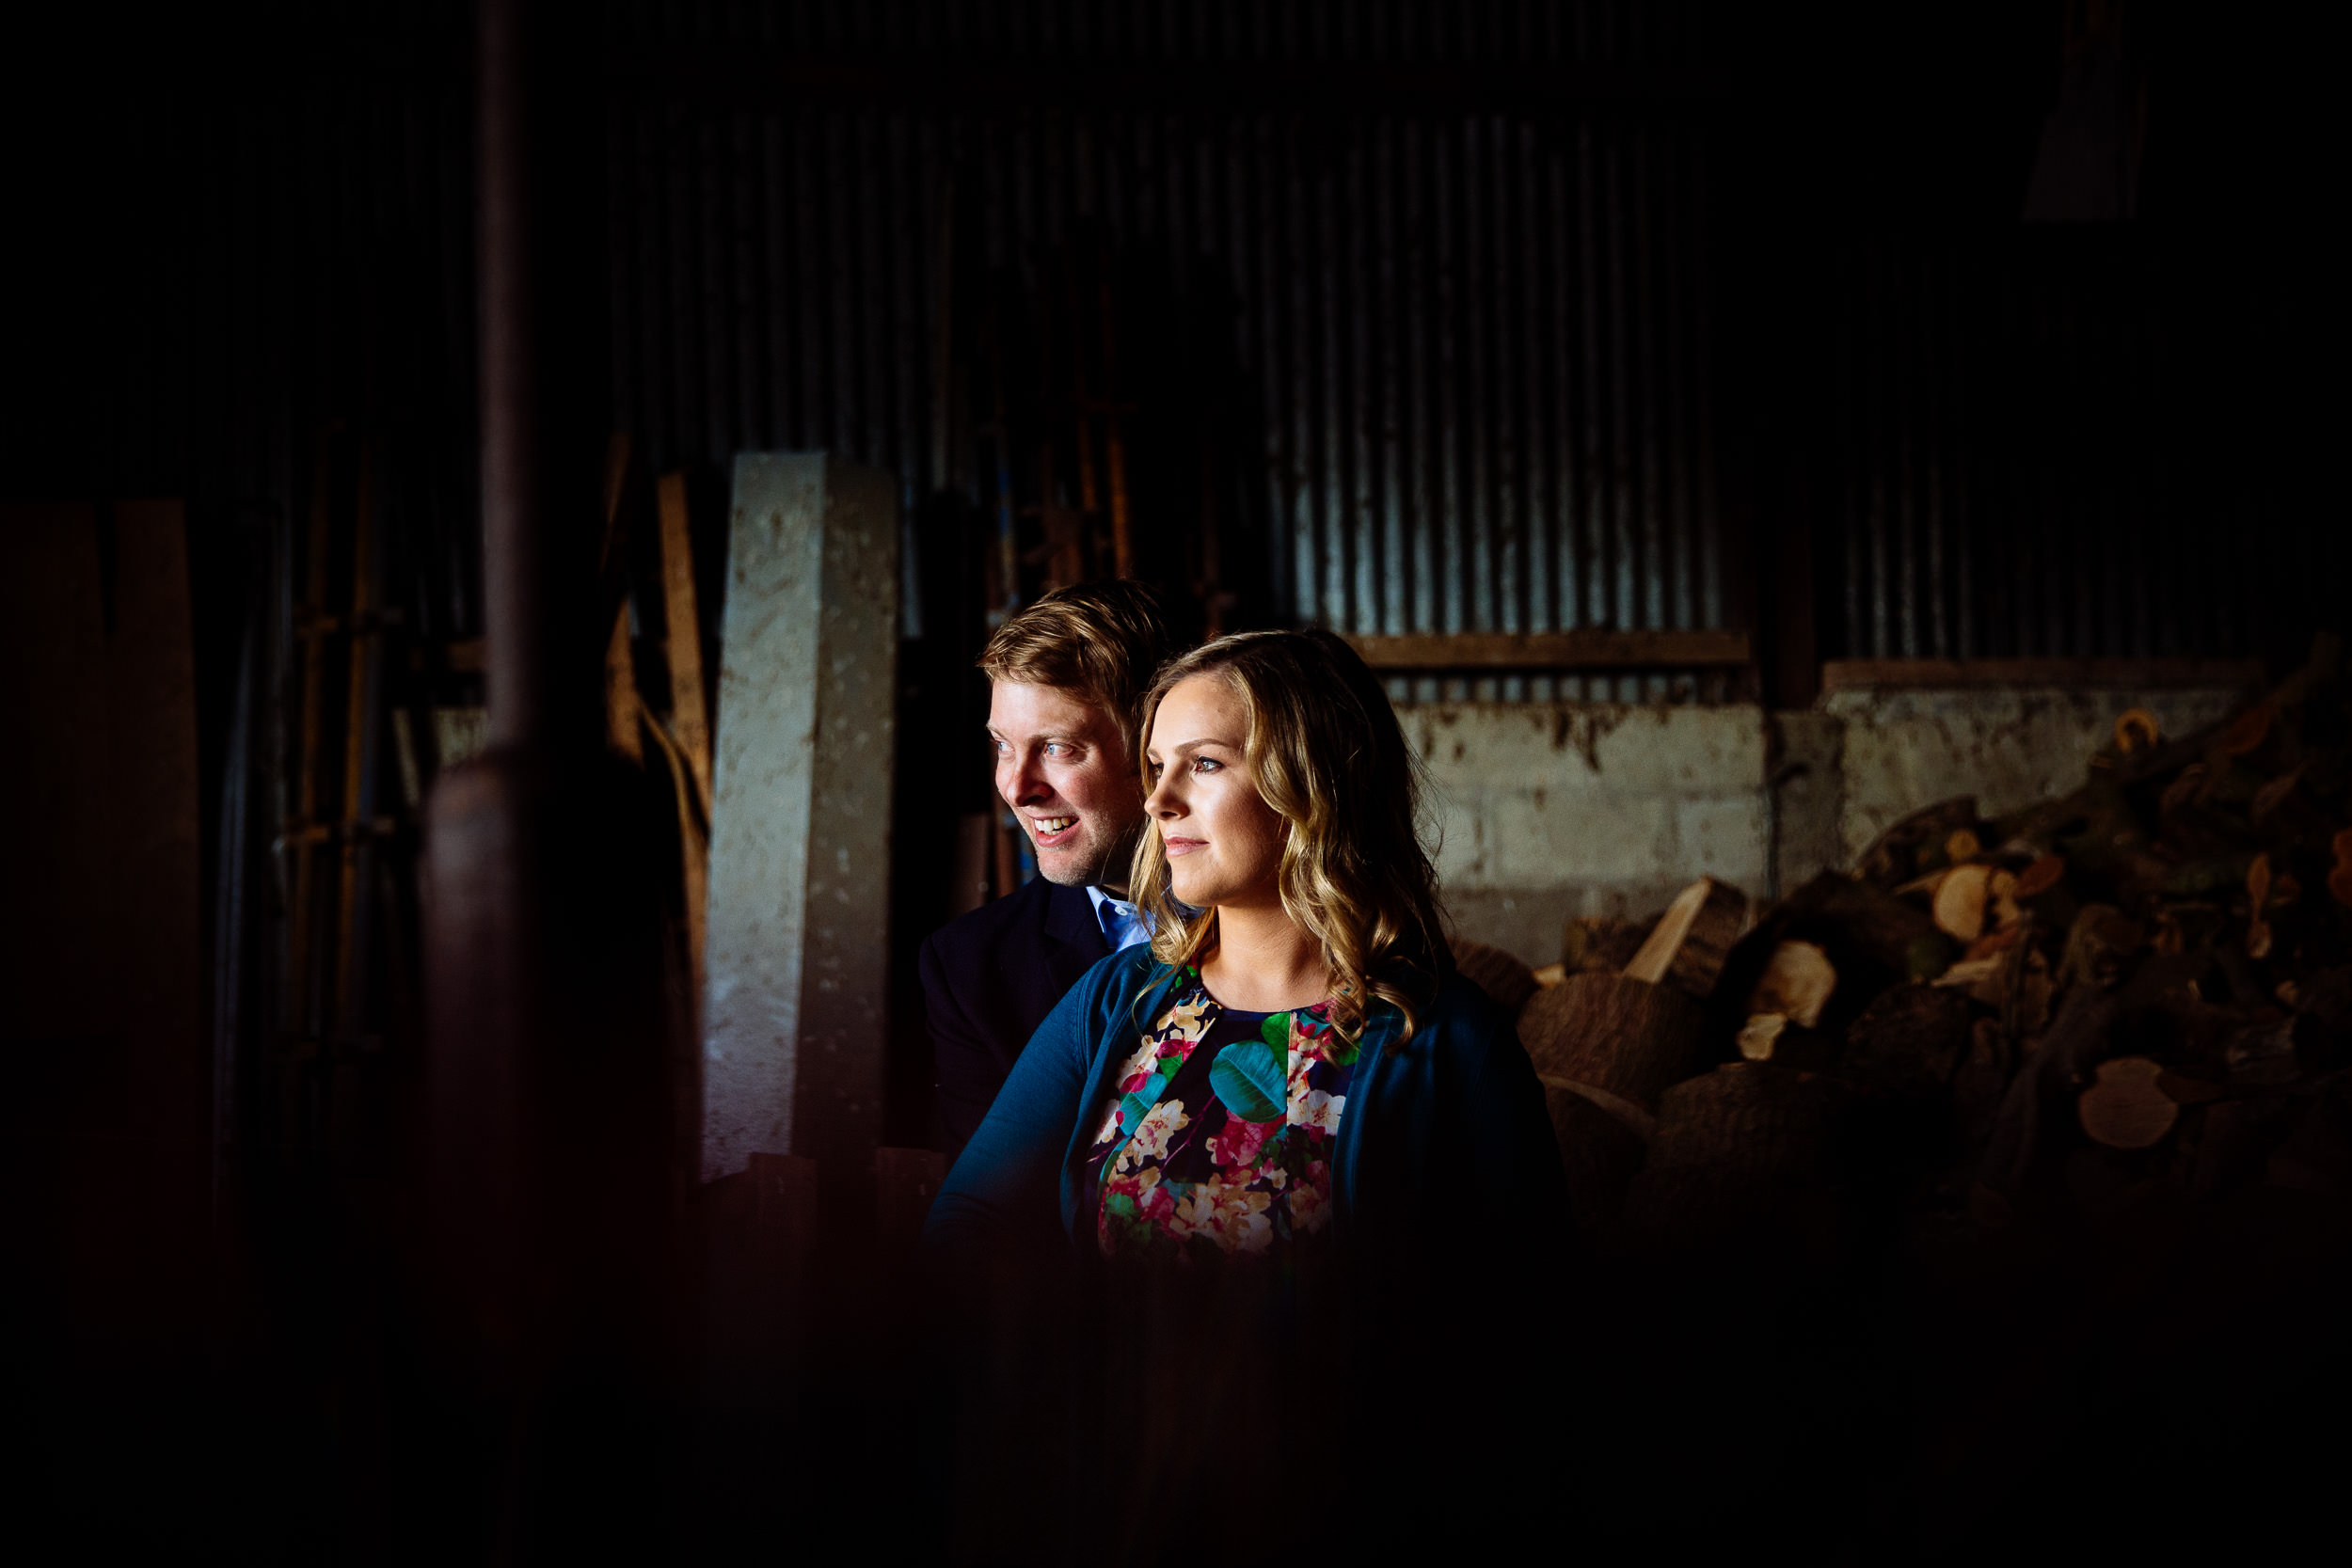 clairebyrnephotography-wedding-photography-ireland-engagement-sunset-farm-horses-16.jpg